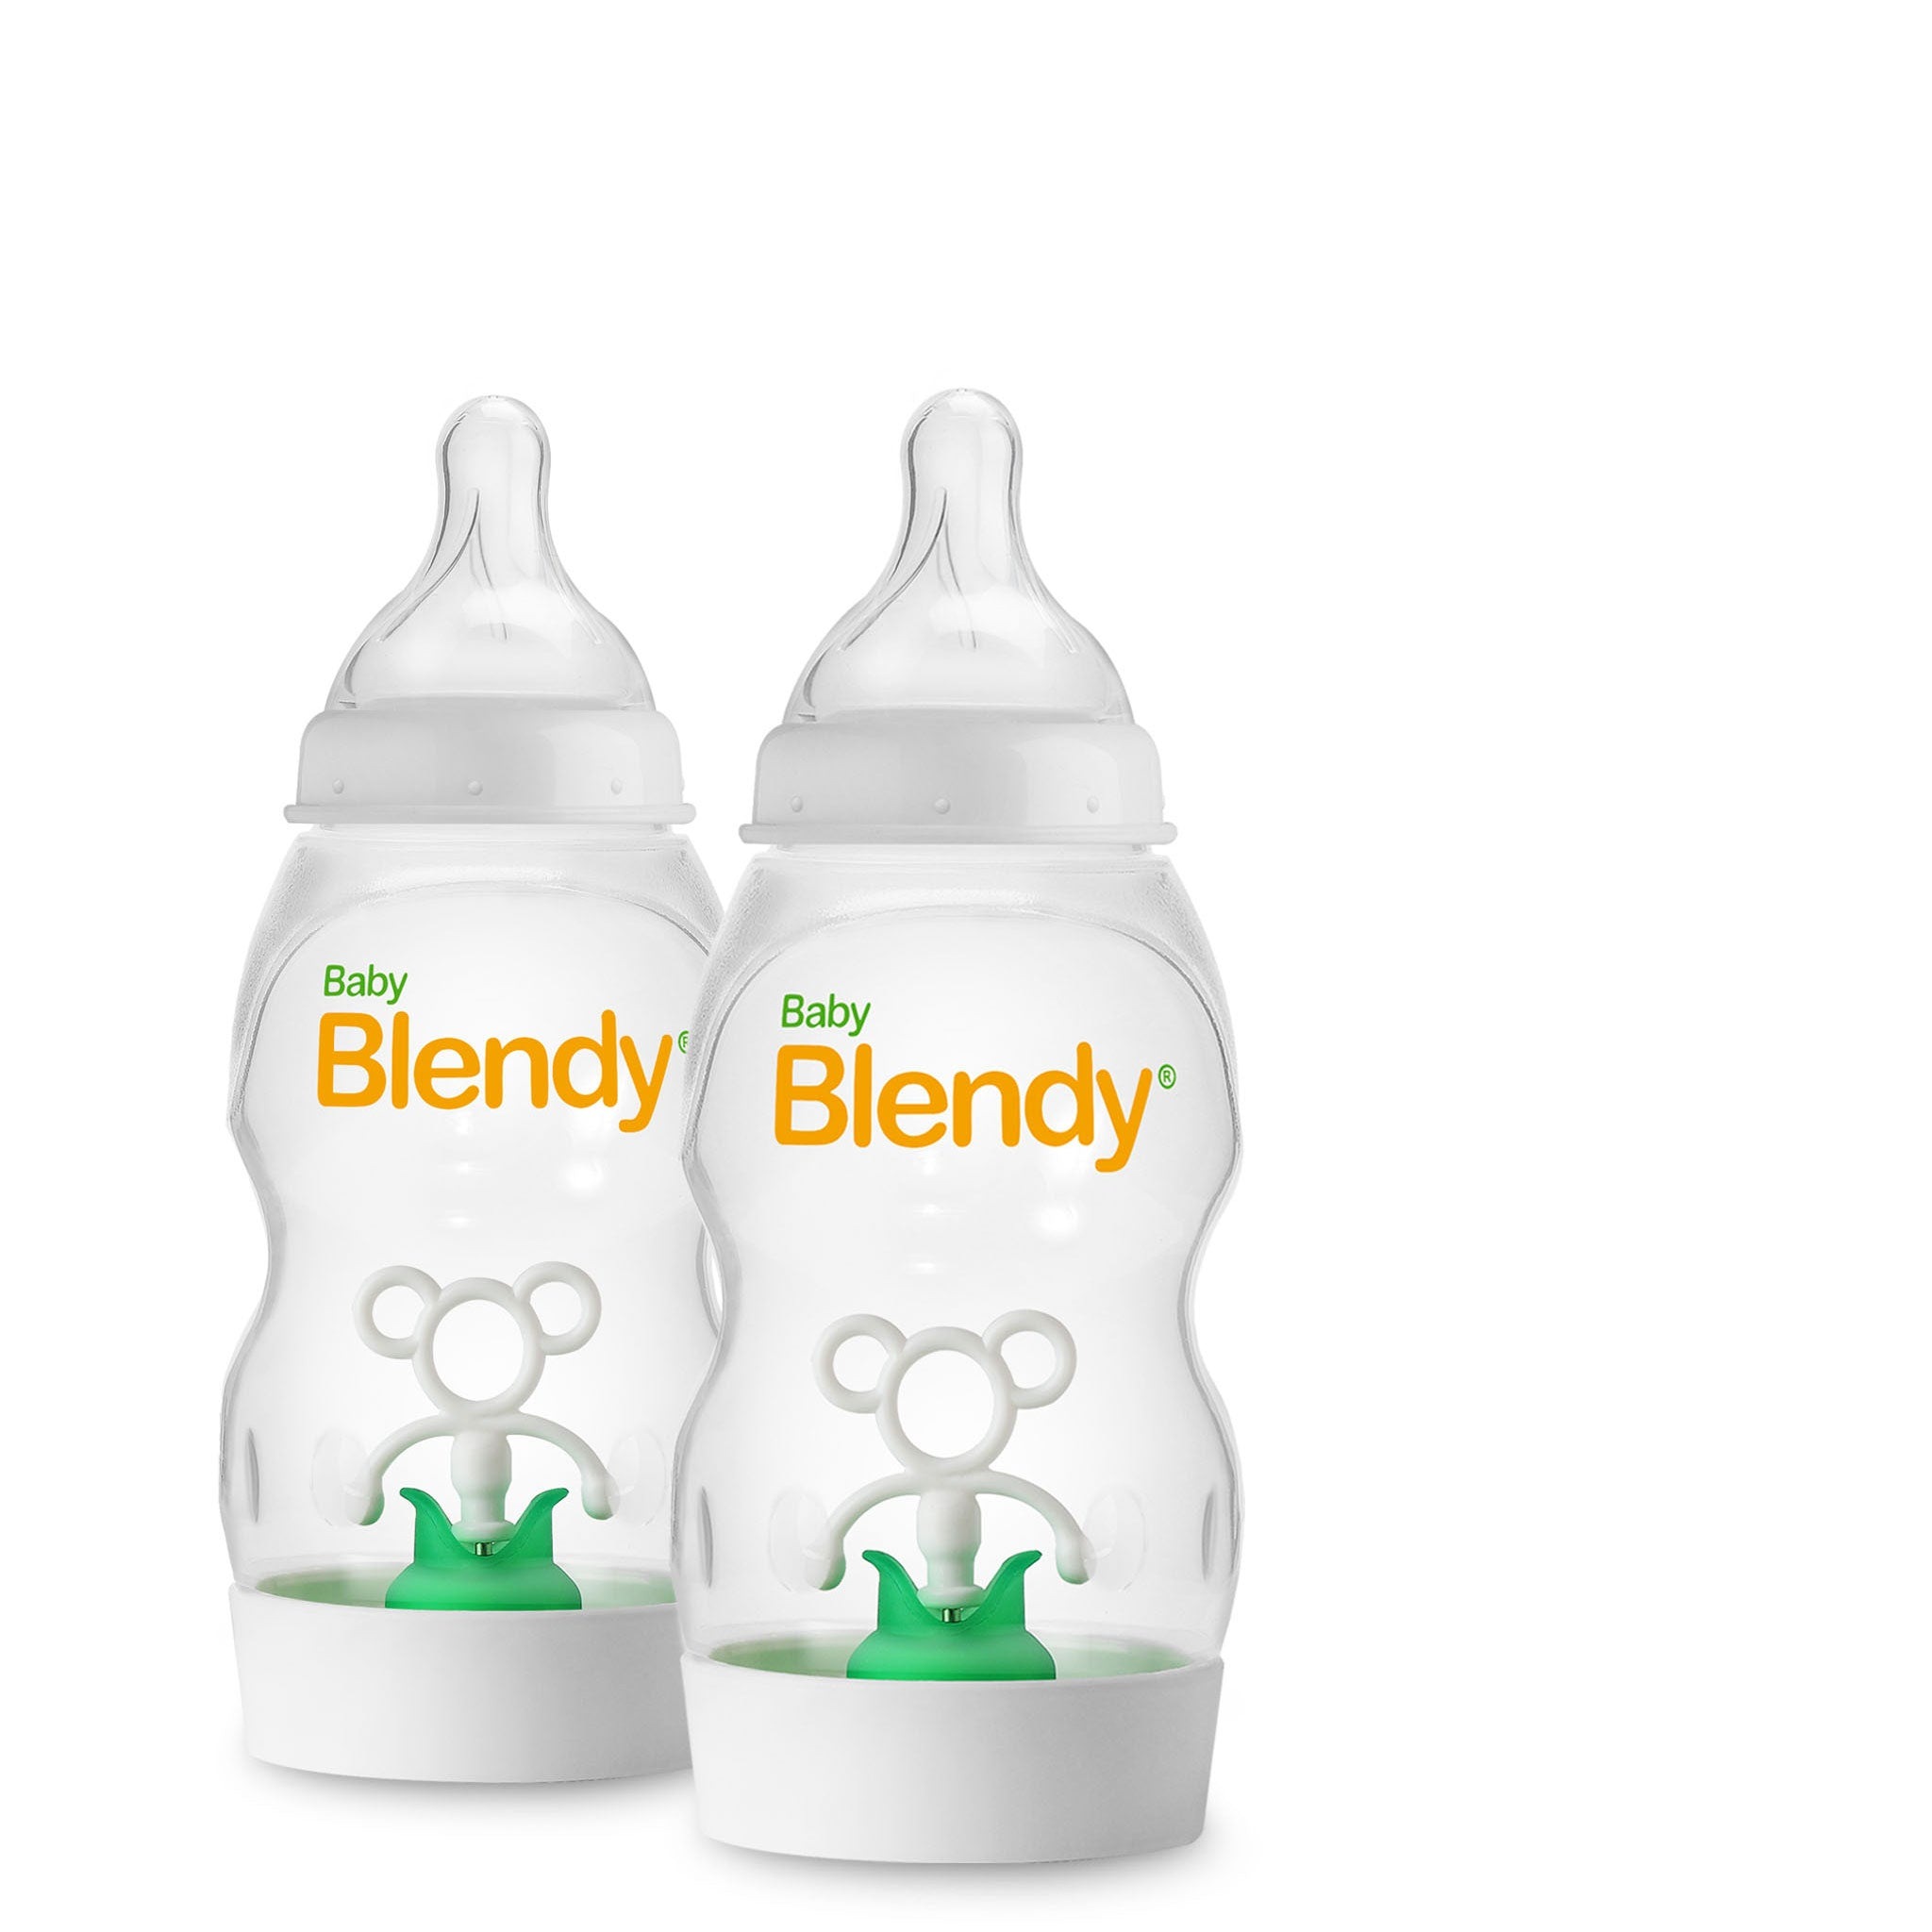 Additional Baby Blendy Bottles (Blender Not Included)